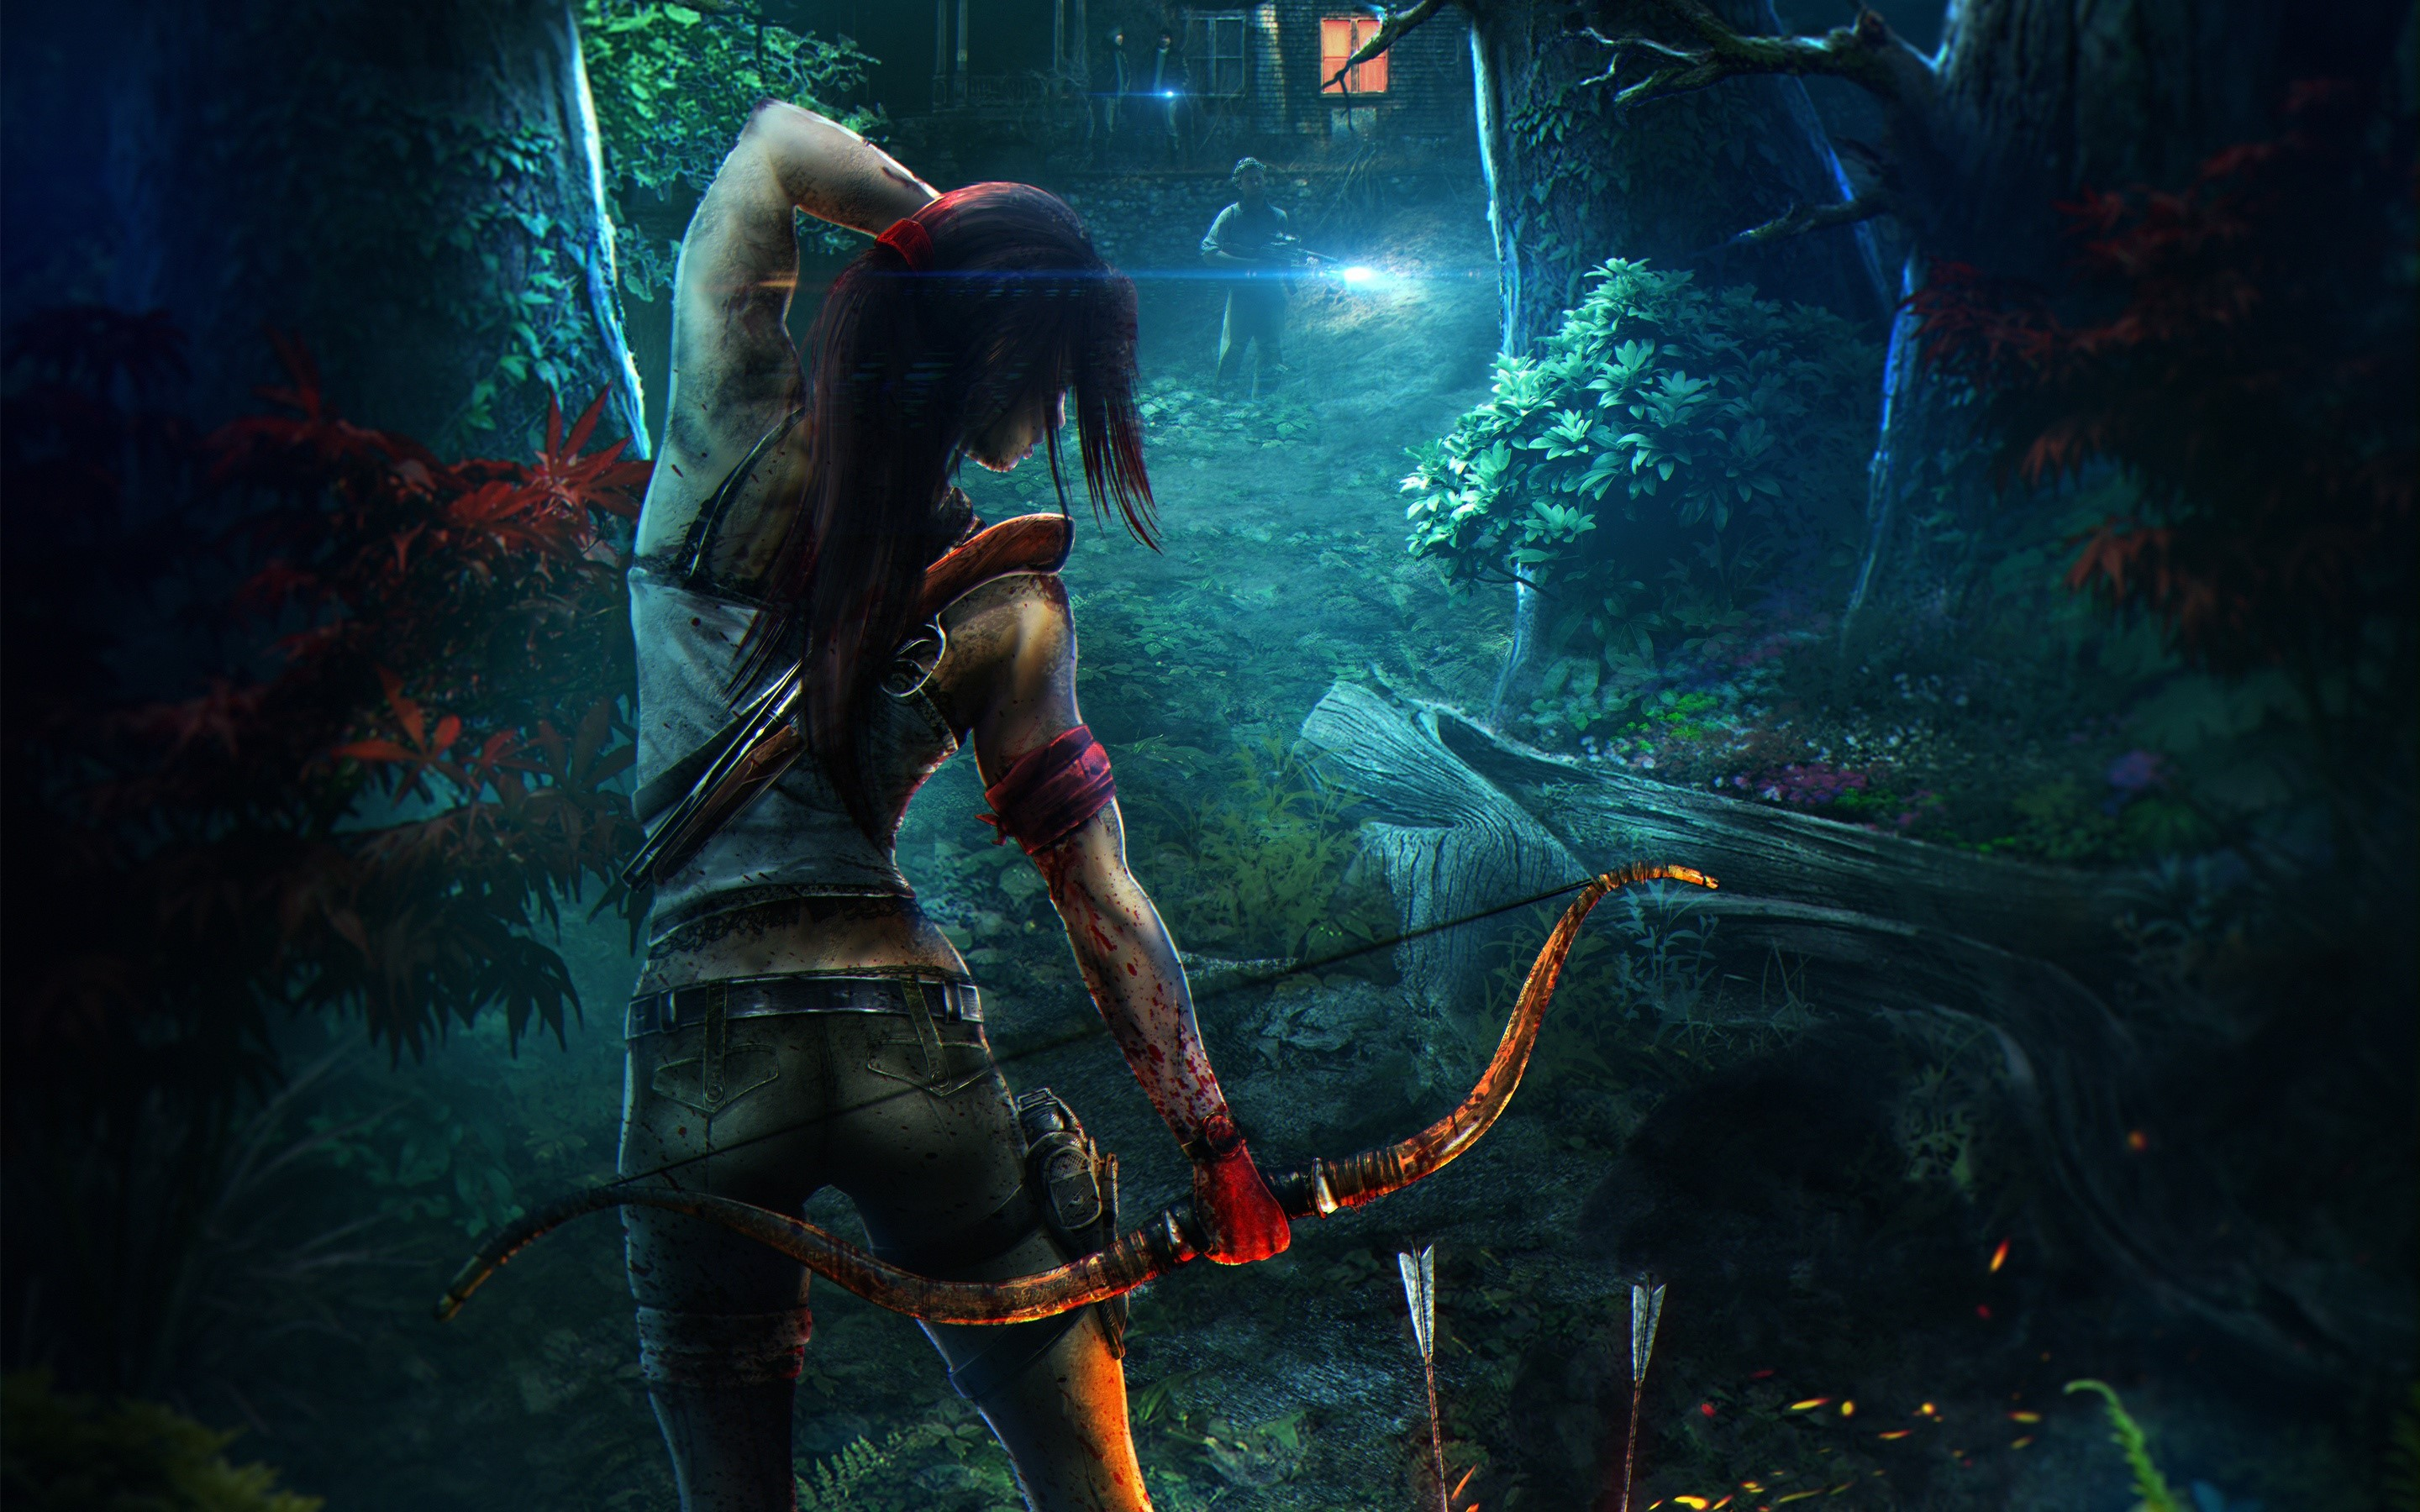 Wallpaper Tomb Raider Quest Images